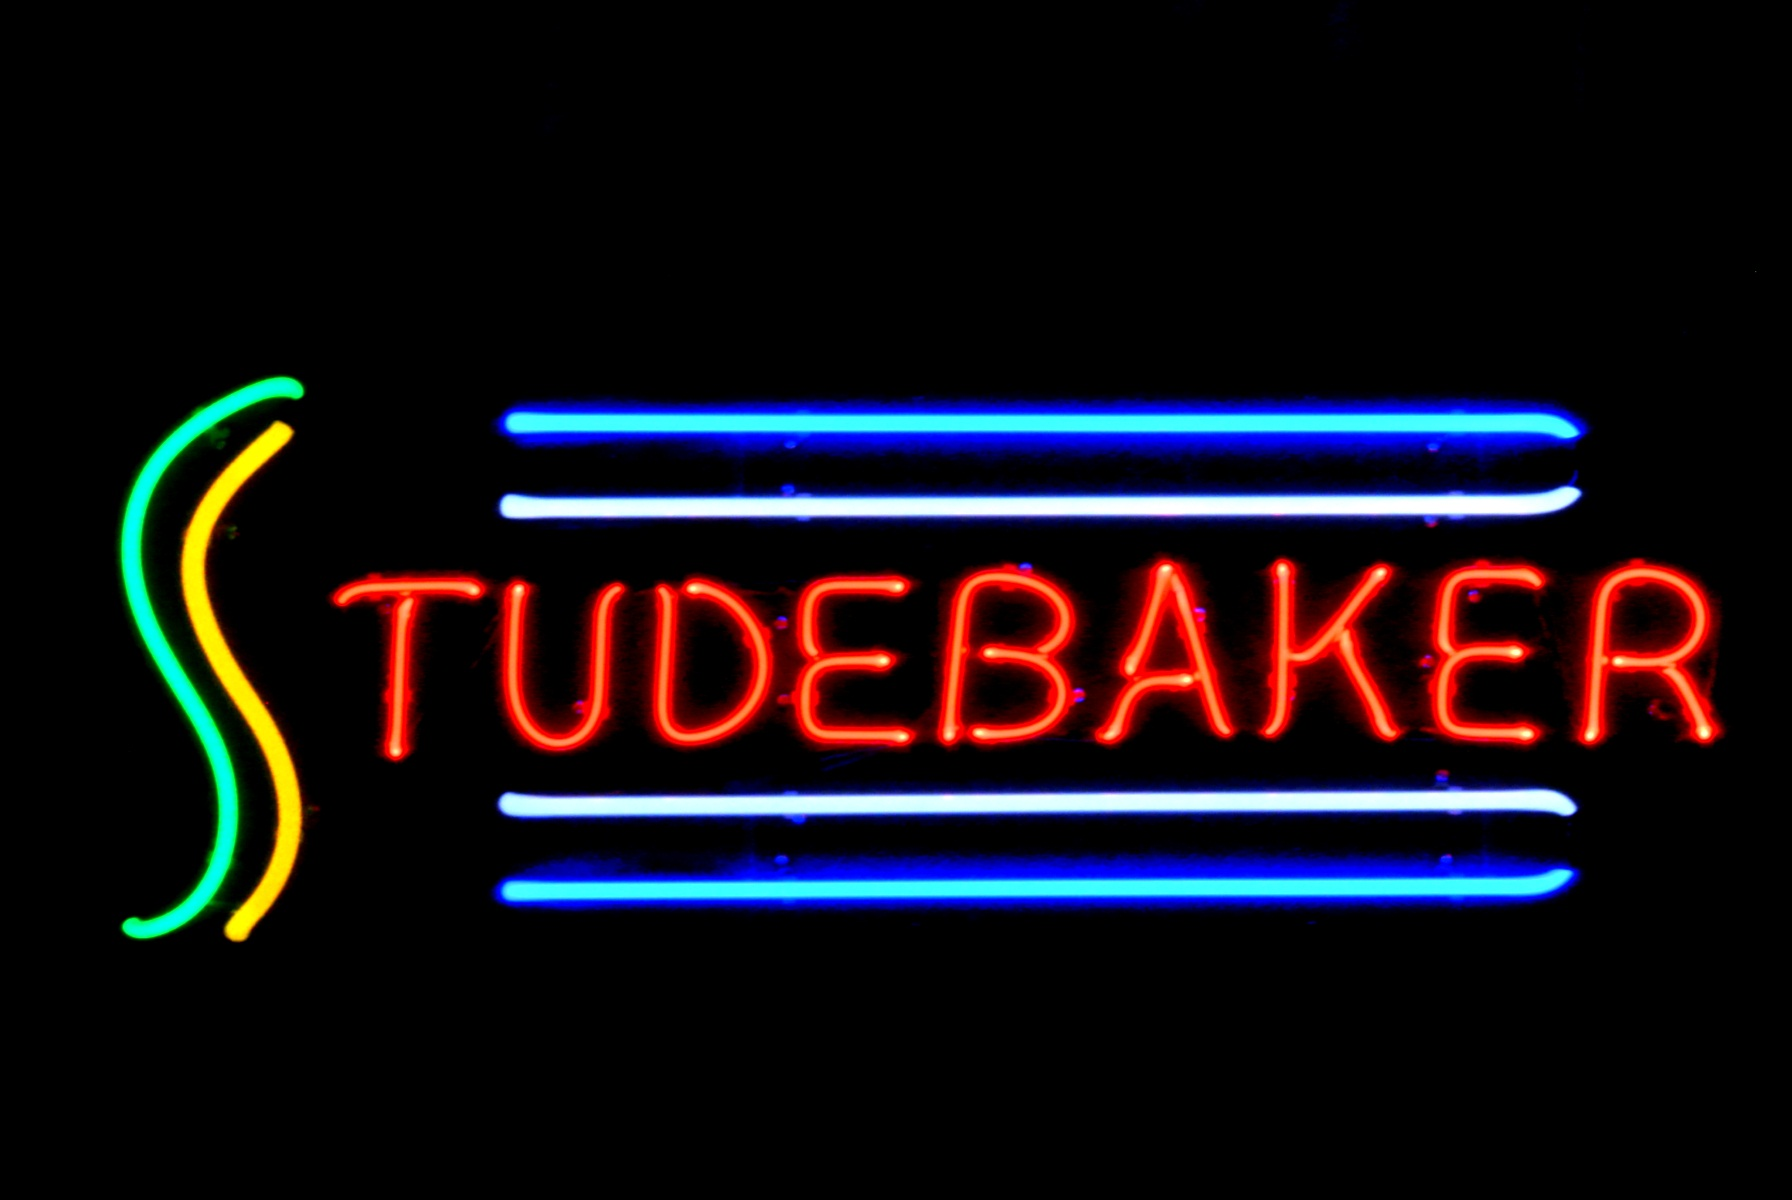 Studebaker Dealership Neon Signs by John Barton - BartonNeonMagic.com